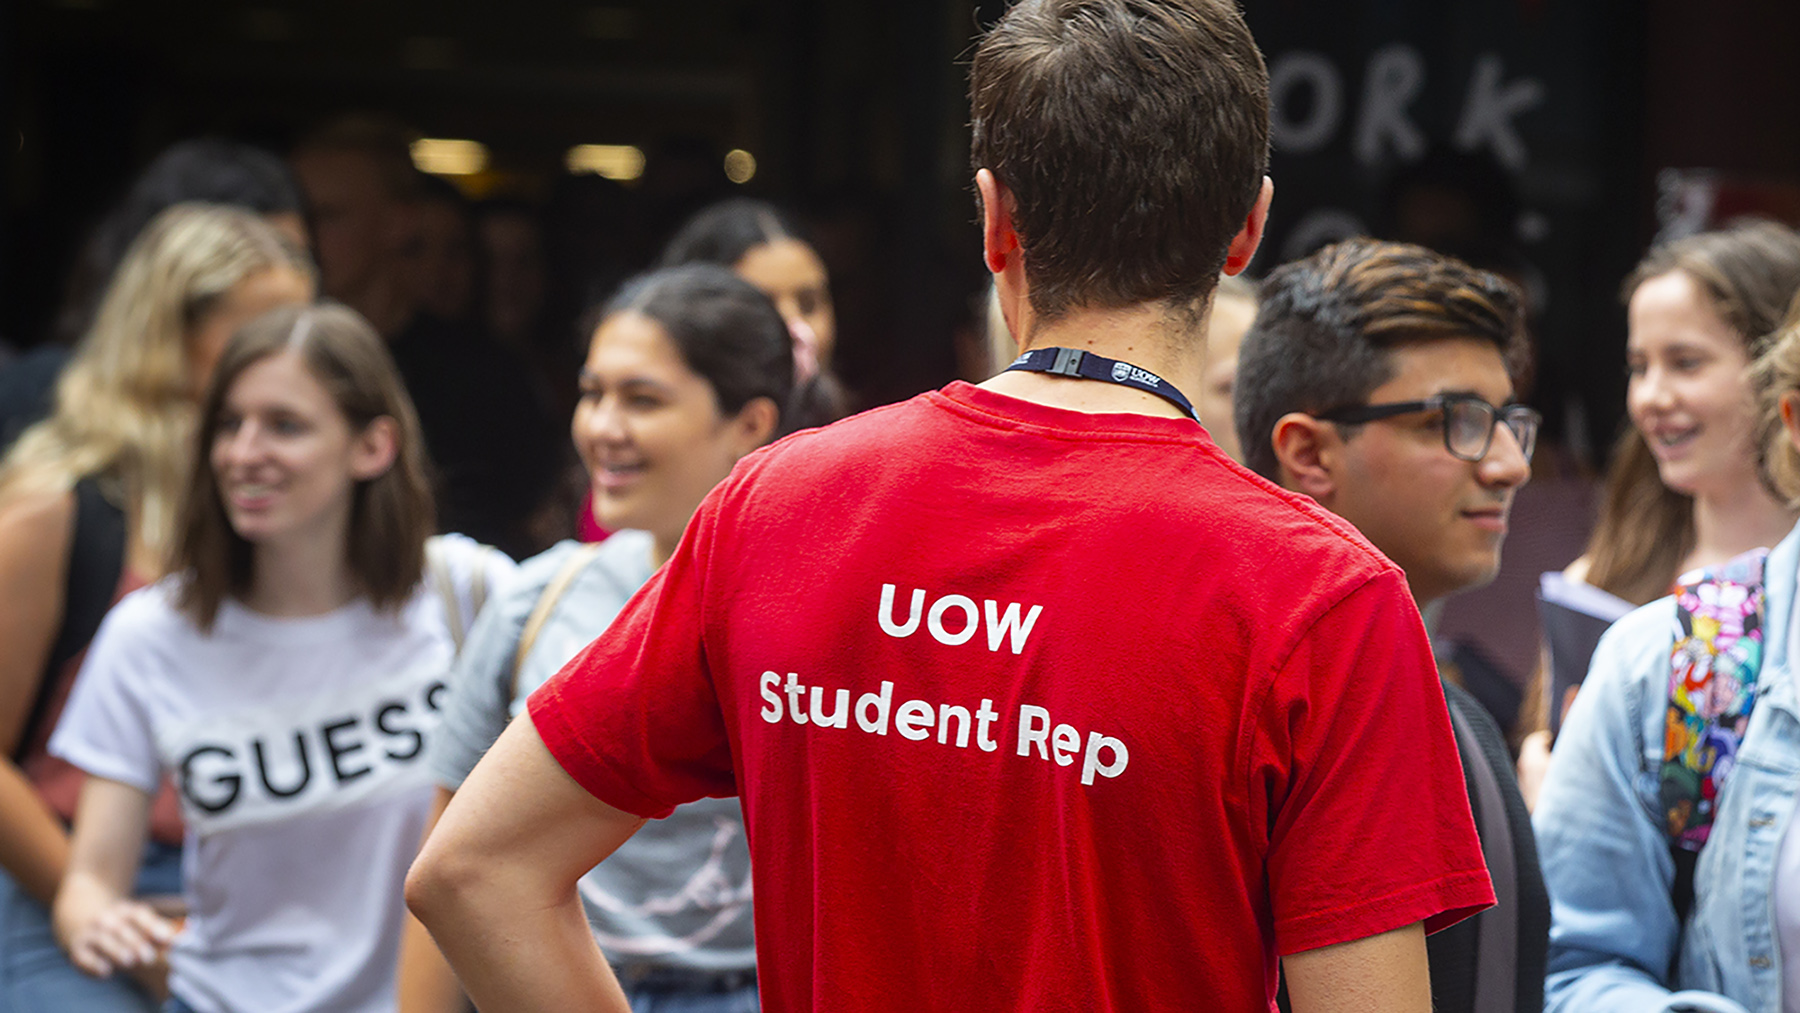 A UOW student rep guides new students at an event on campus